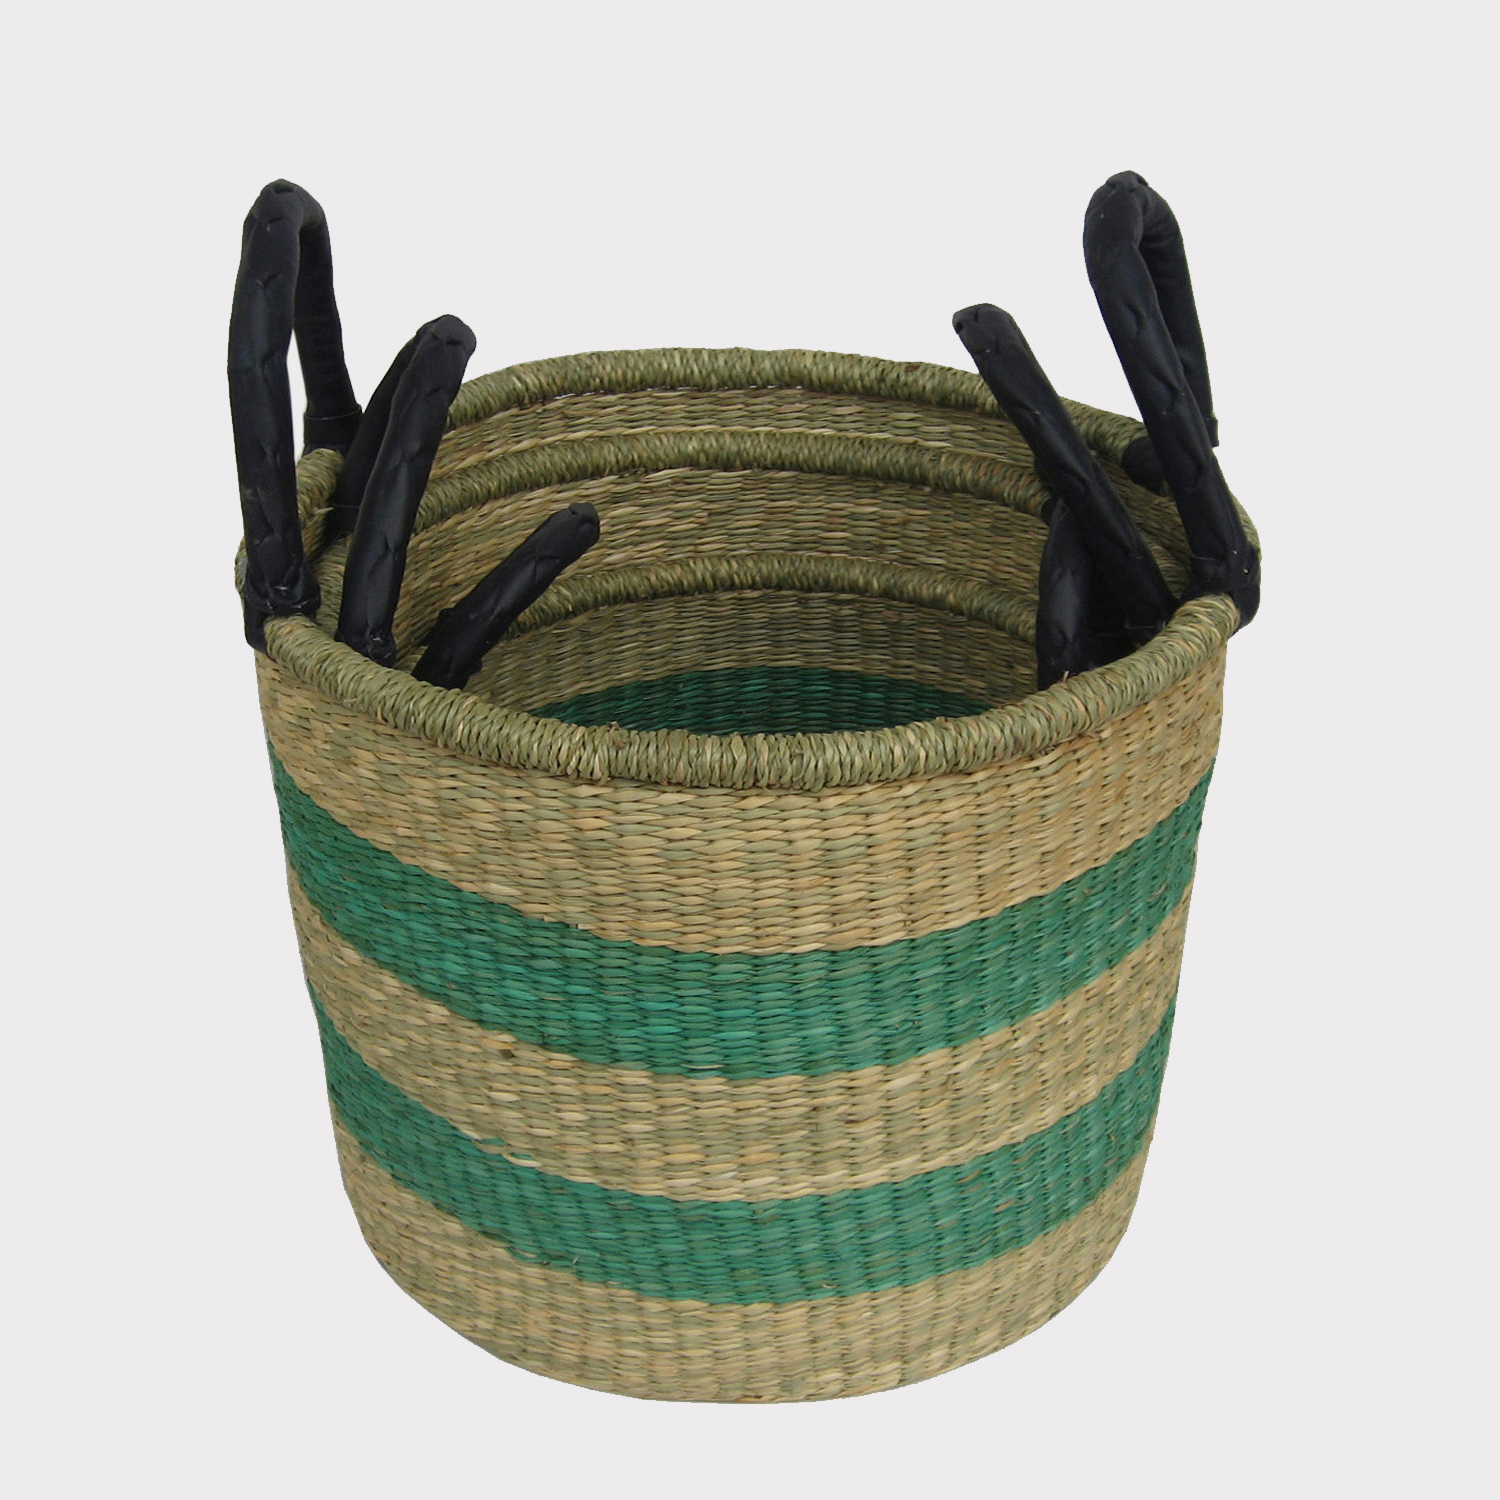 Seagrass Bag 560056-3